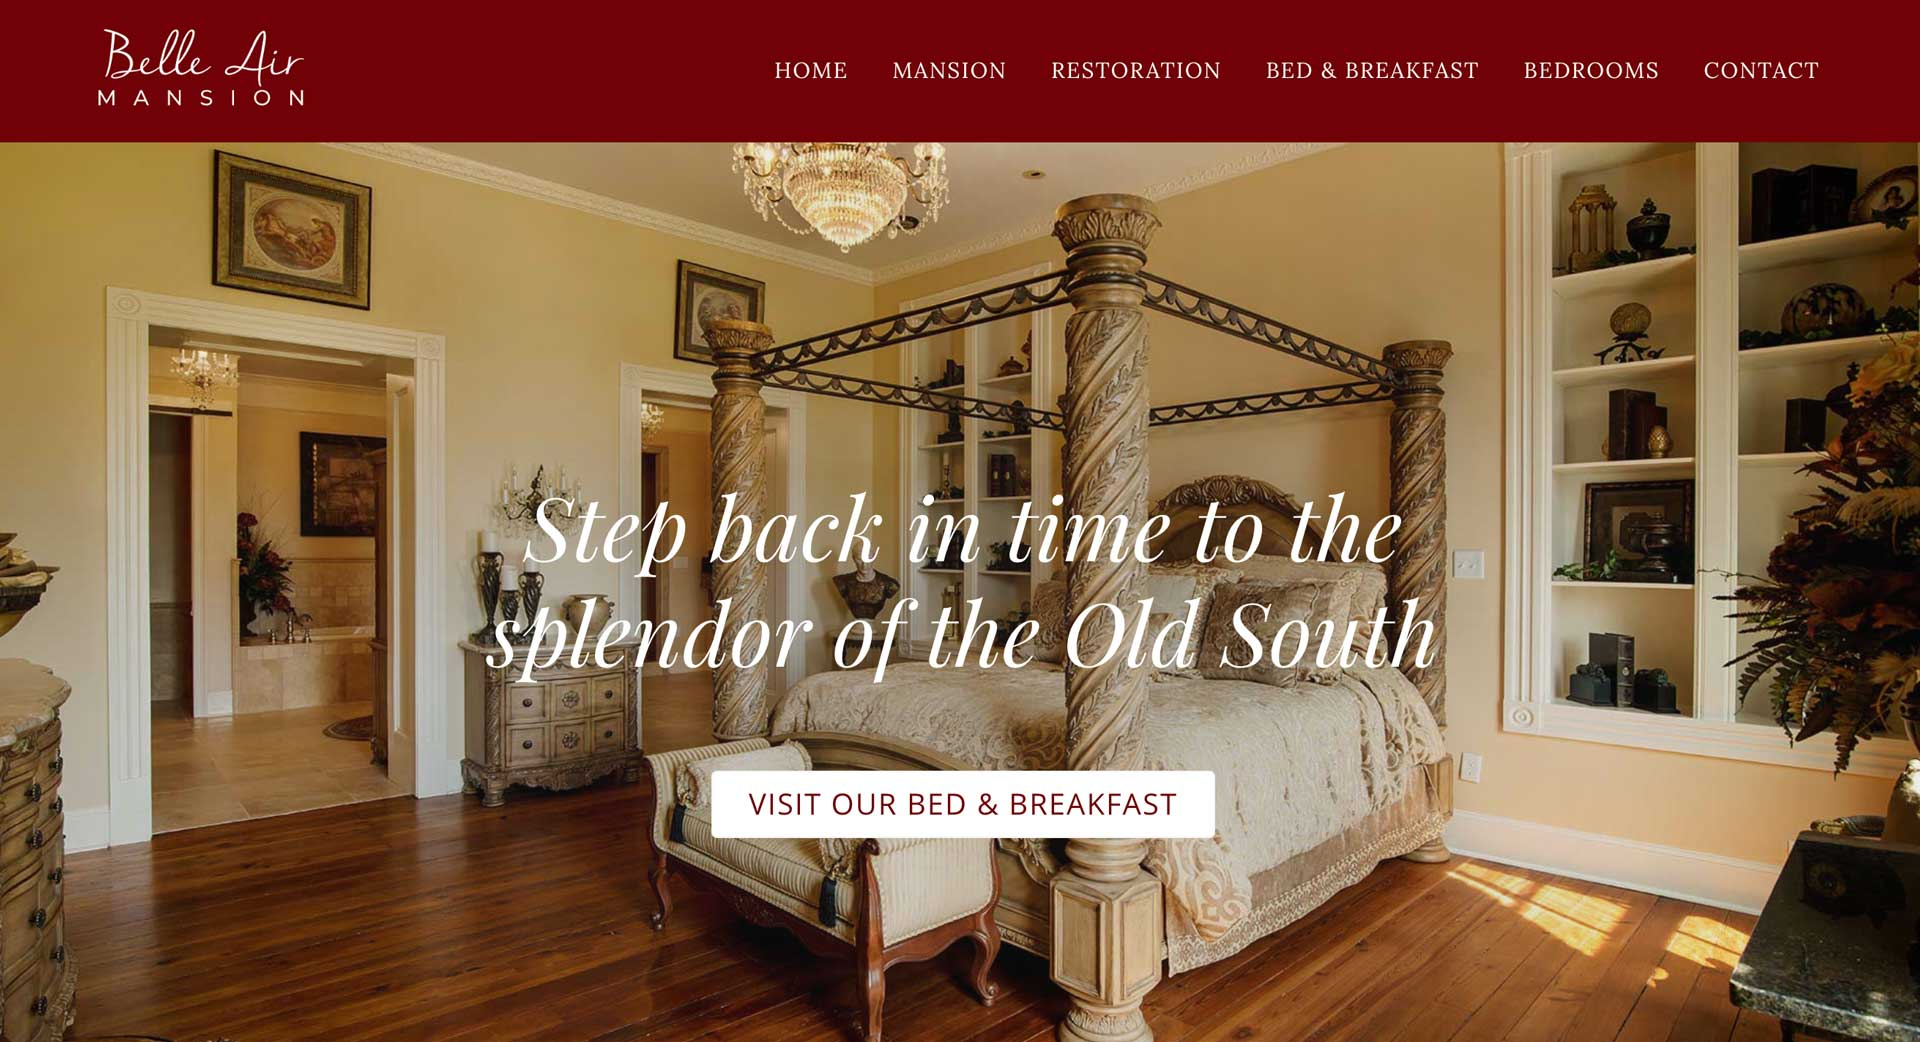 bed-and-breakfast-website-design